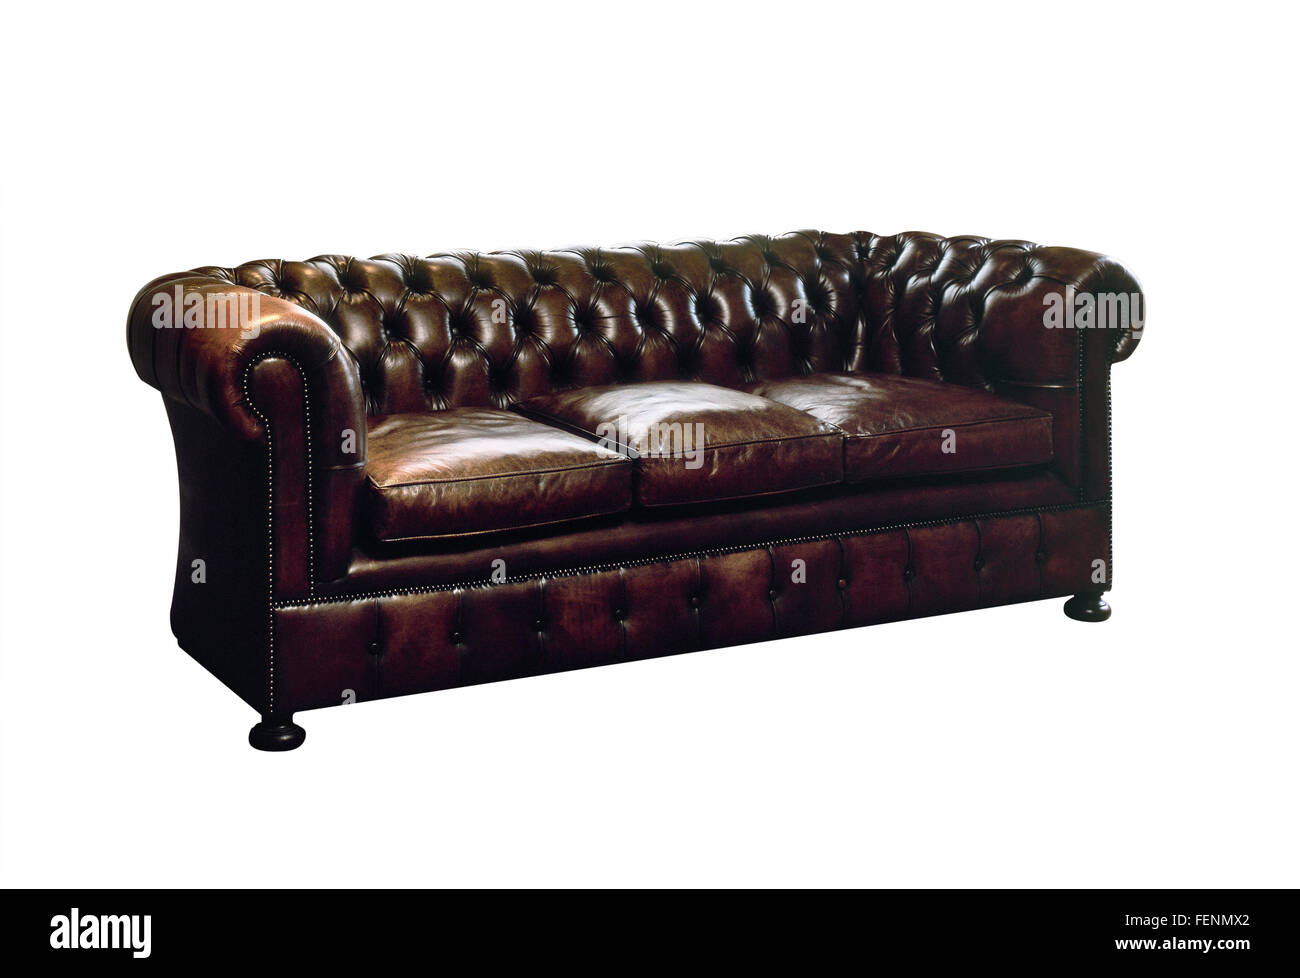 Charmant Old Fashioned Brown Leather Sofa On White With Clipping Path   Stock Image